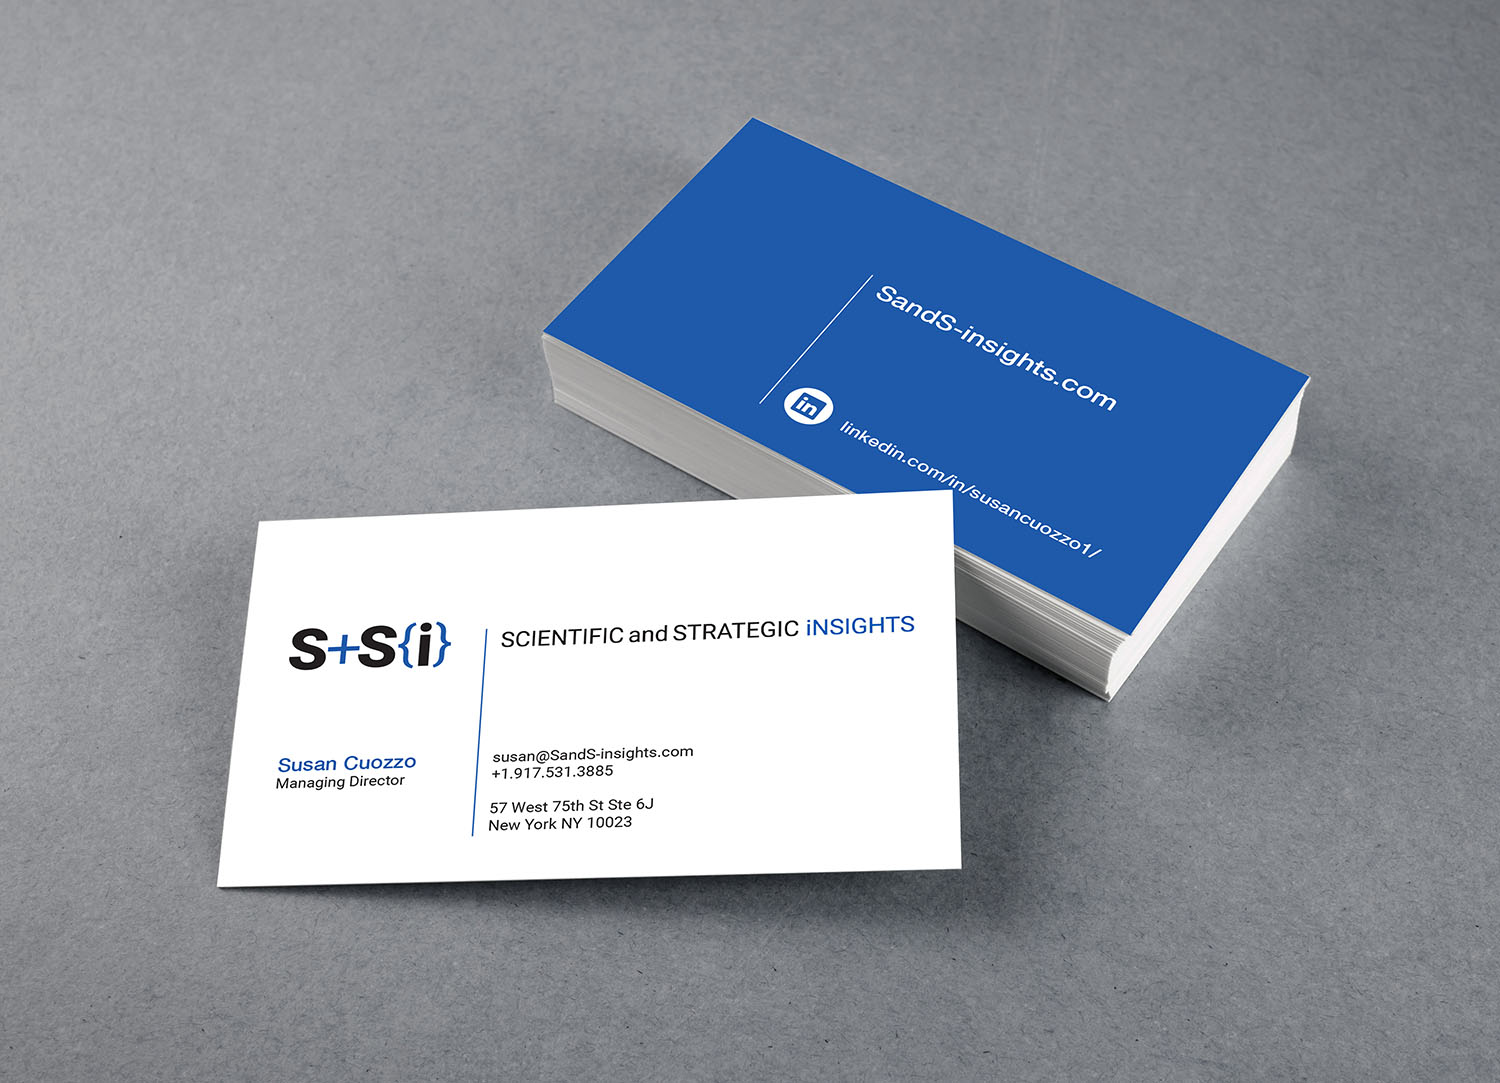 S+Si business cards